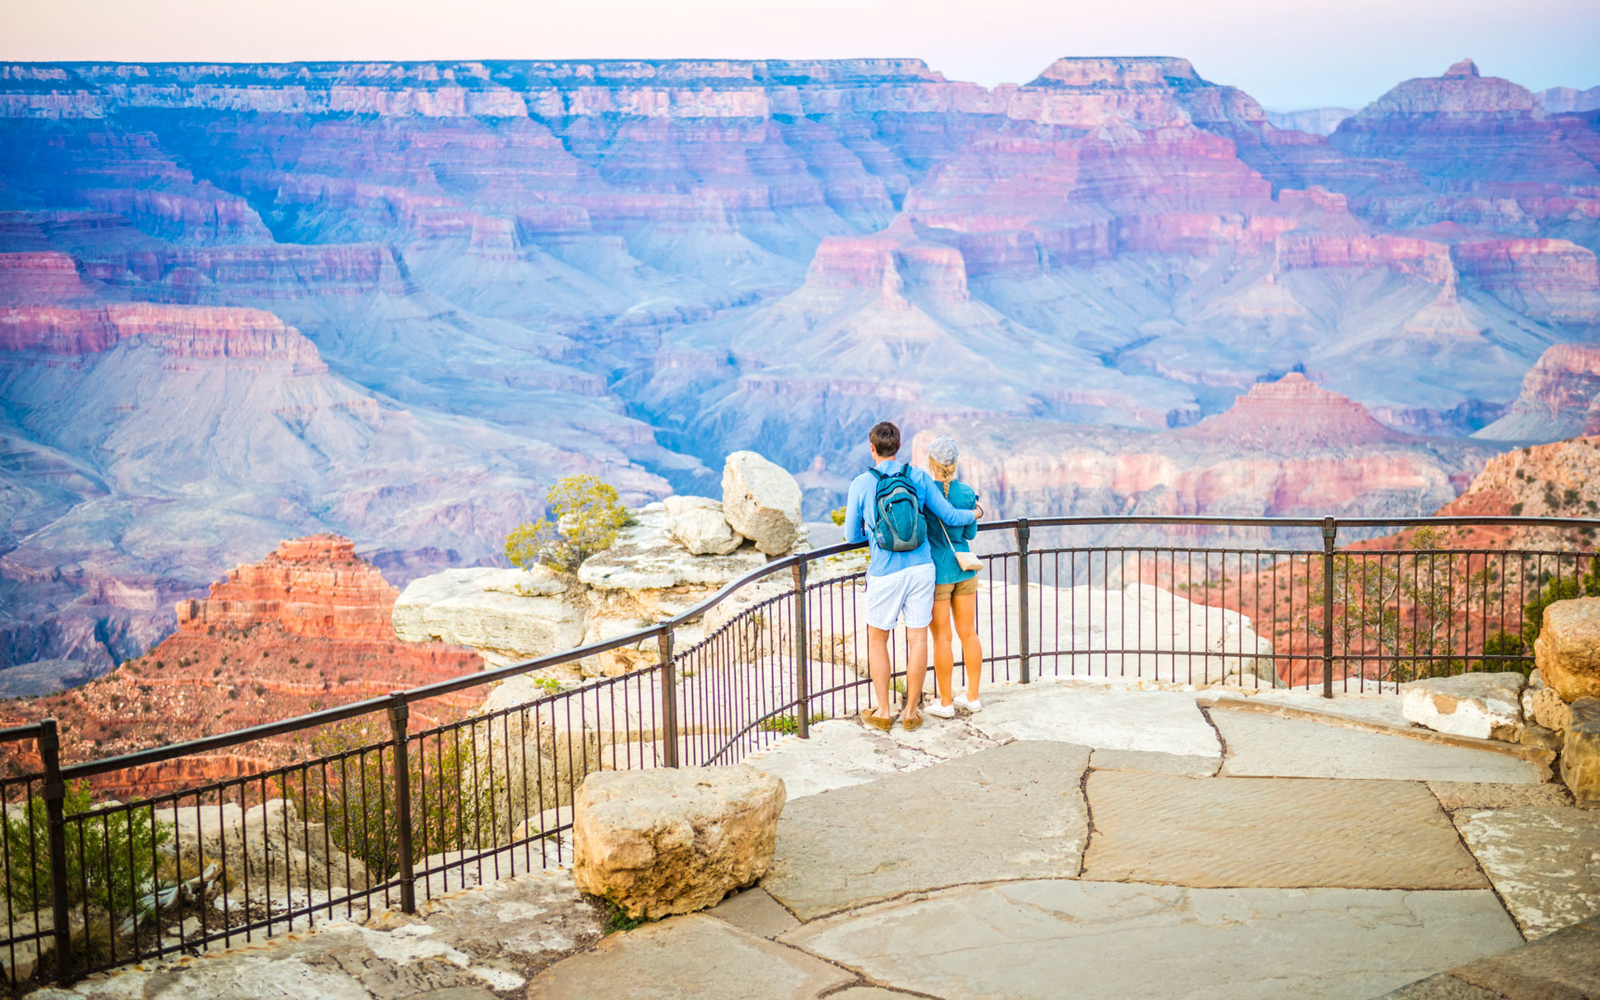 Studies Reveal Health Benefits of Vacations and Parks